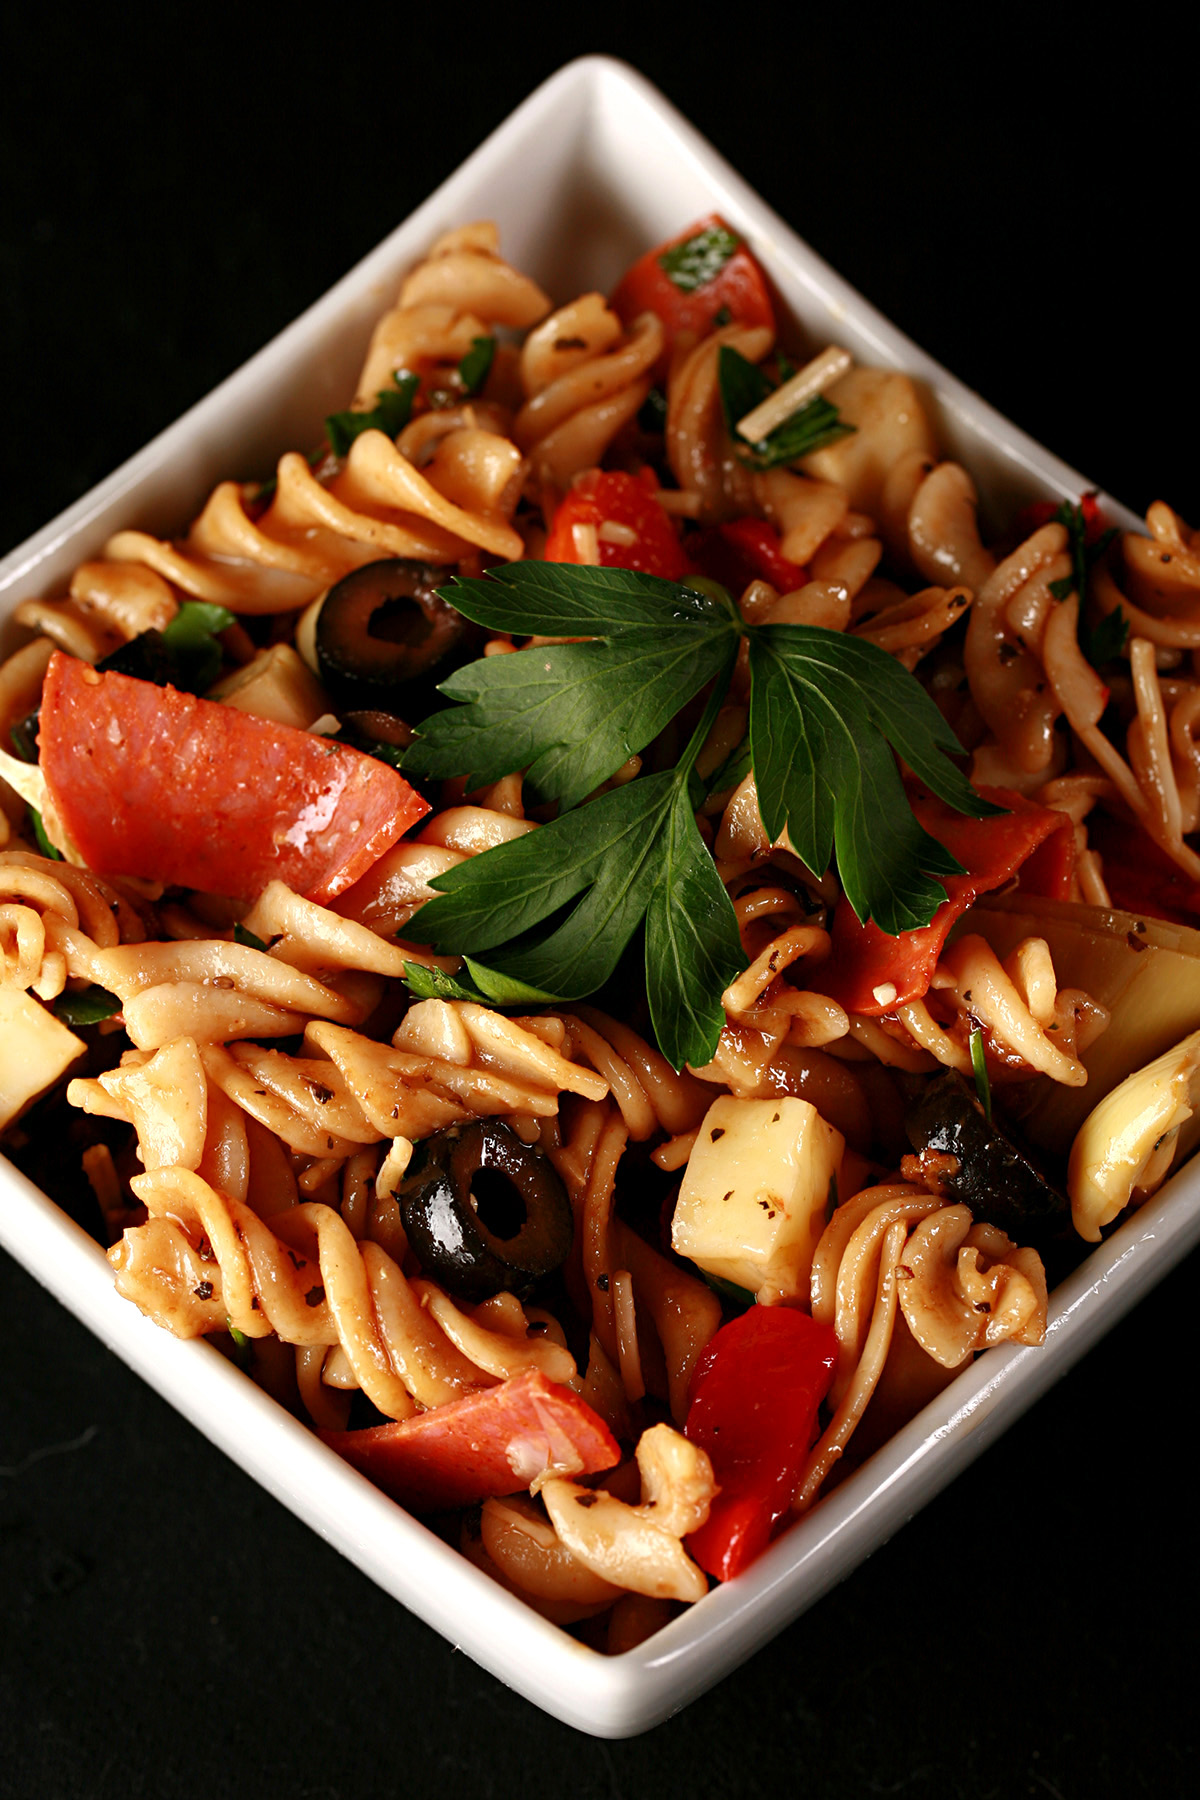 Gluten-free antipasto pasta salad in a white bowl. Spiral noodles are shown lgthly coated in a thin red sauce, with pepperoni, artichoked, black olives, cheese, and parsley visible.